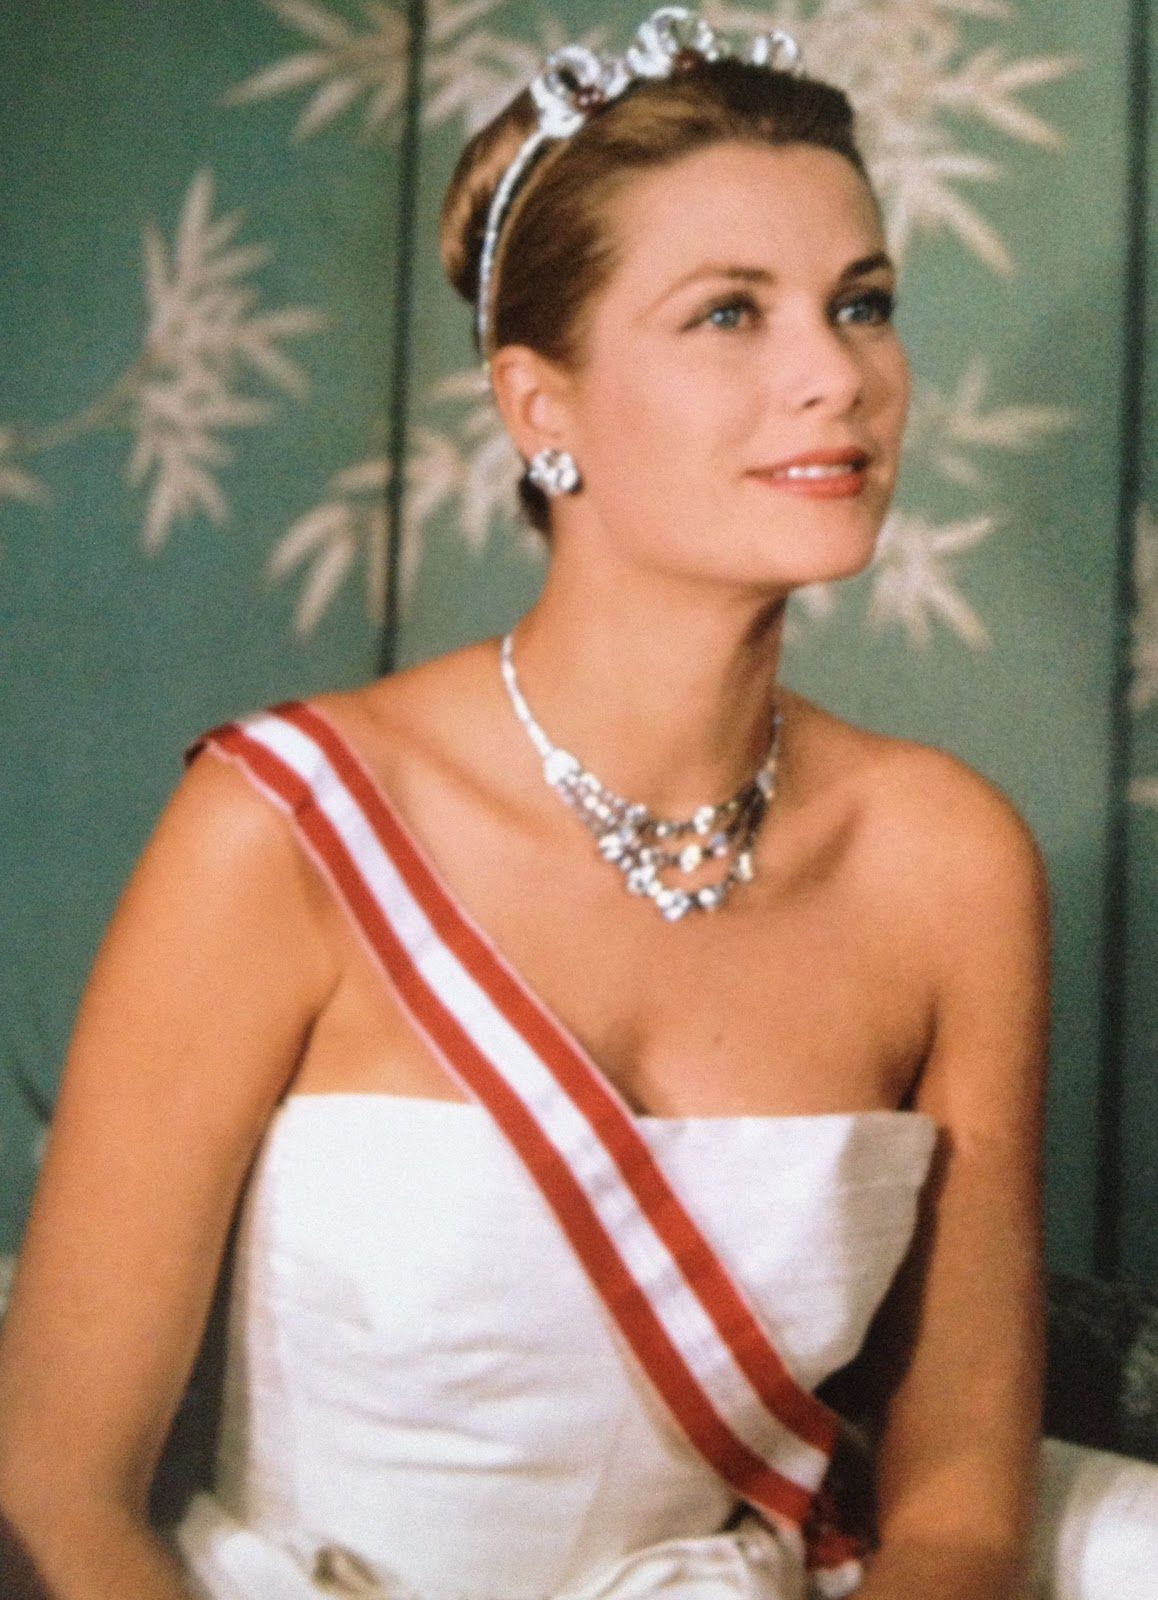 Princess Grace * Grace Kelly, the American actress and